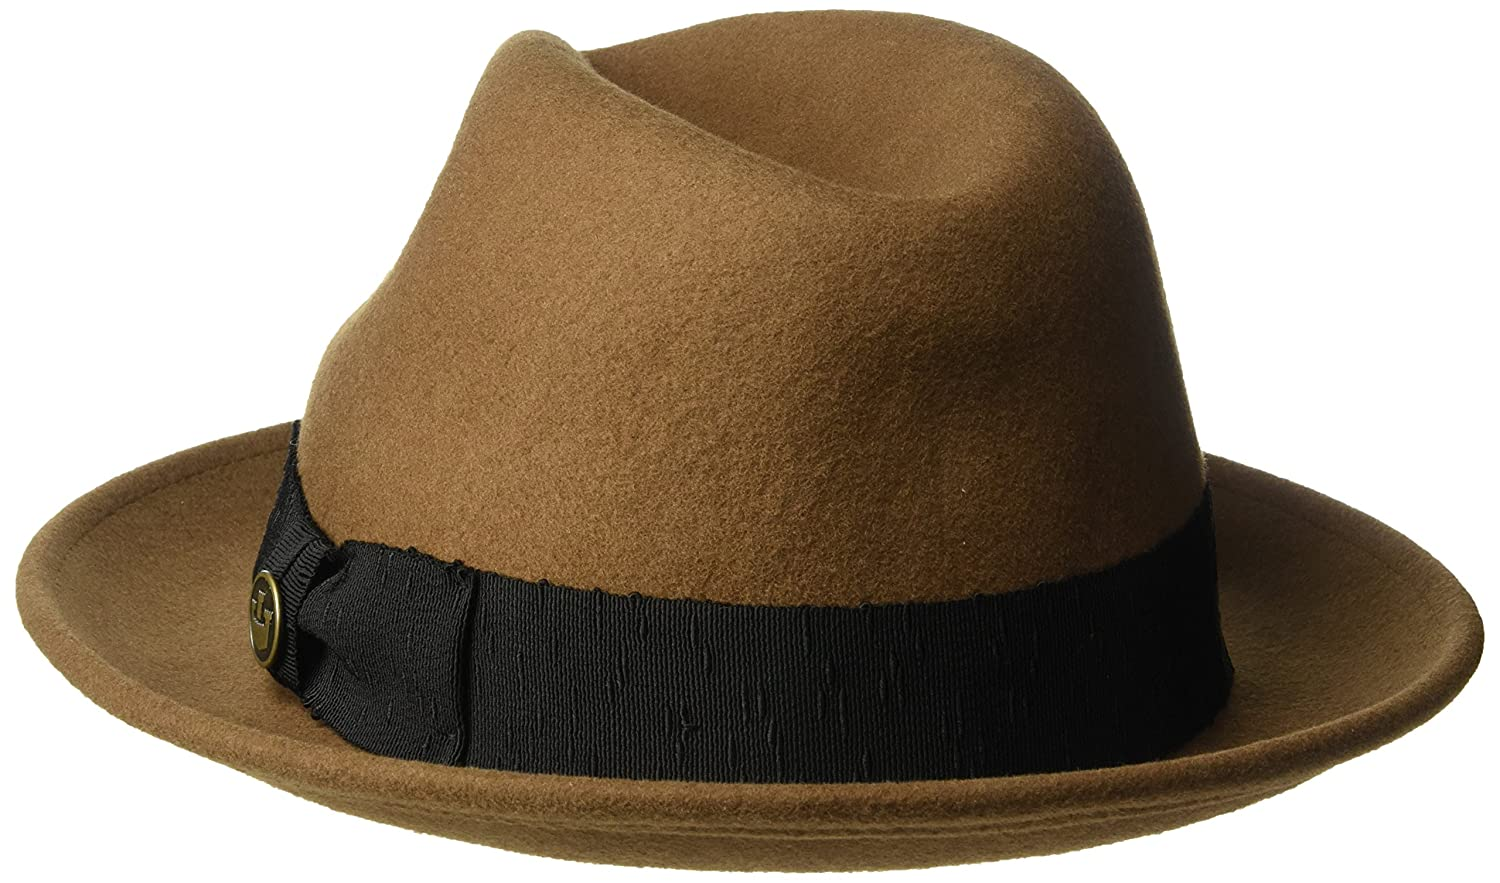 d49a4c292e870 Goorin Bros. Men s Mr. Driver Wool Fedora Hat at Amazon Men s Clothing  store